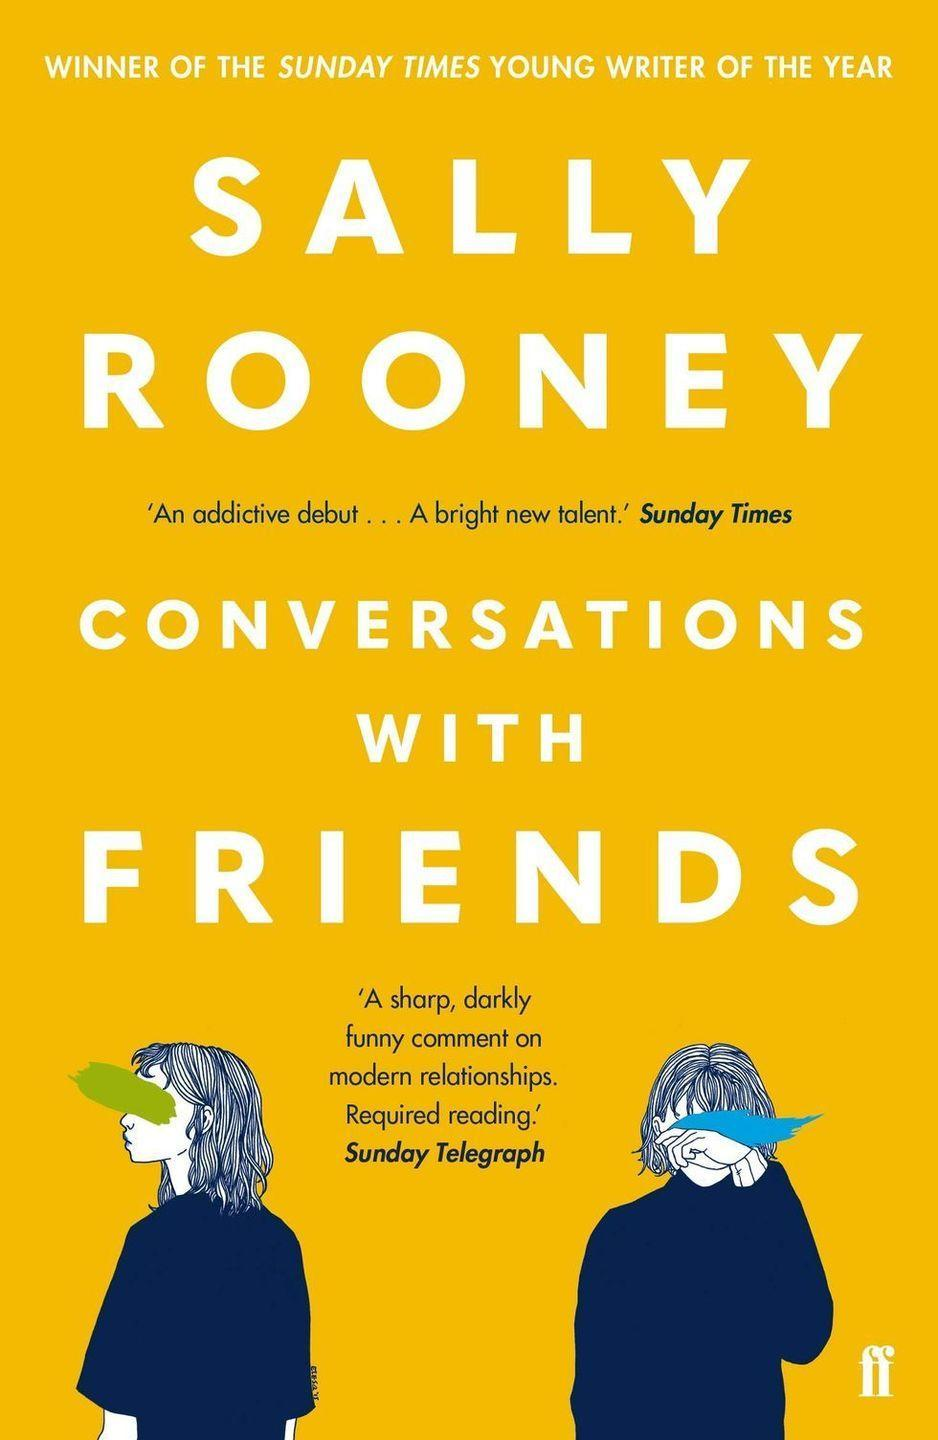 <p><strong>Release date: Spring/ Summer on BBC Three</strong></p><p>Not content with essentially winning the 2020 TV content crown with Normal People, the same team are now adapting Sally Rooney's first novel Conversations with Friends.</p><p>Despite the two stories being completely different, the latest adaption will also be set in Dublin and follows a similar vein of exploring the nuances and complexities of the main characters' relationships.</p><p>Watch as Frances, Bobbi, Nick and Melissa's lives and loves become intertwined, with devastating results - and look out for a possible Normal People's Marianne crossover - after eagle-eyed Rooney fans spotted a character of the same name briefly appearing in the book. </p>